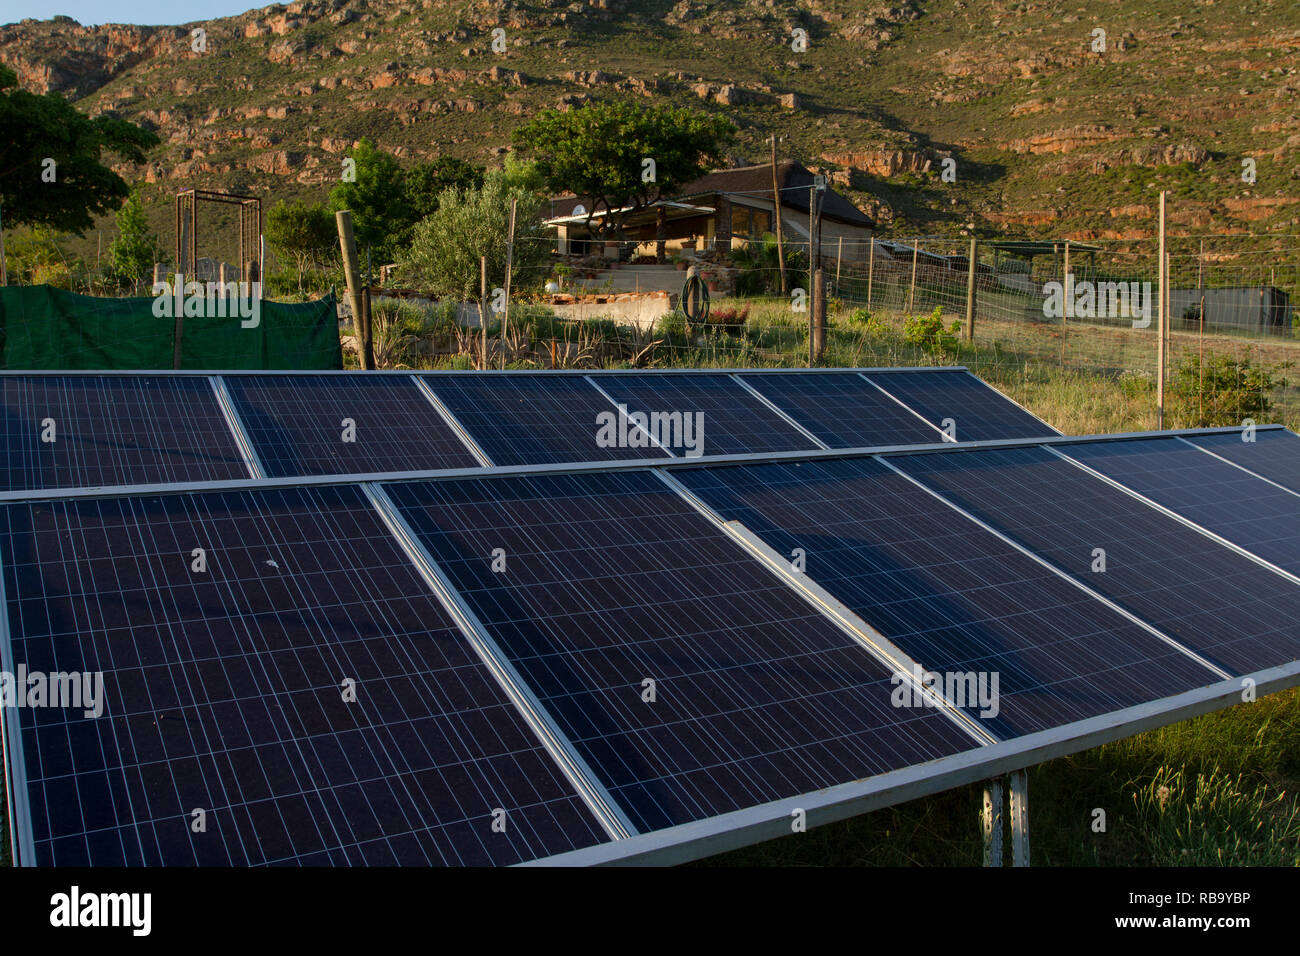 Living off the grid: solar panels provide electricity for the farm house in the background. - Stock Image